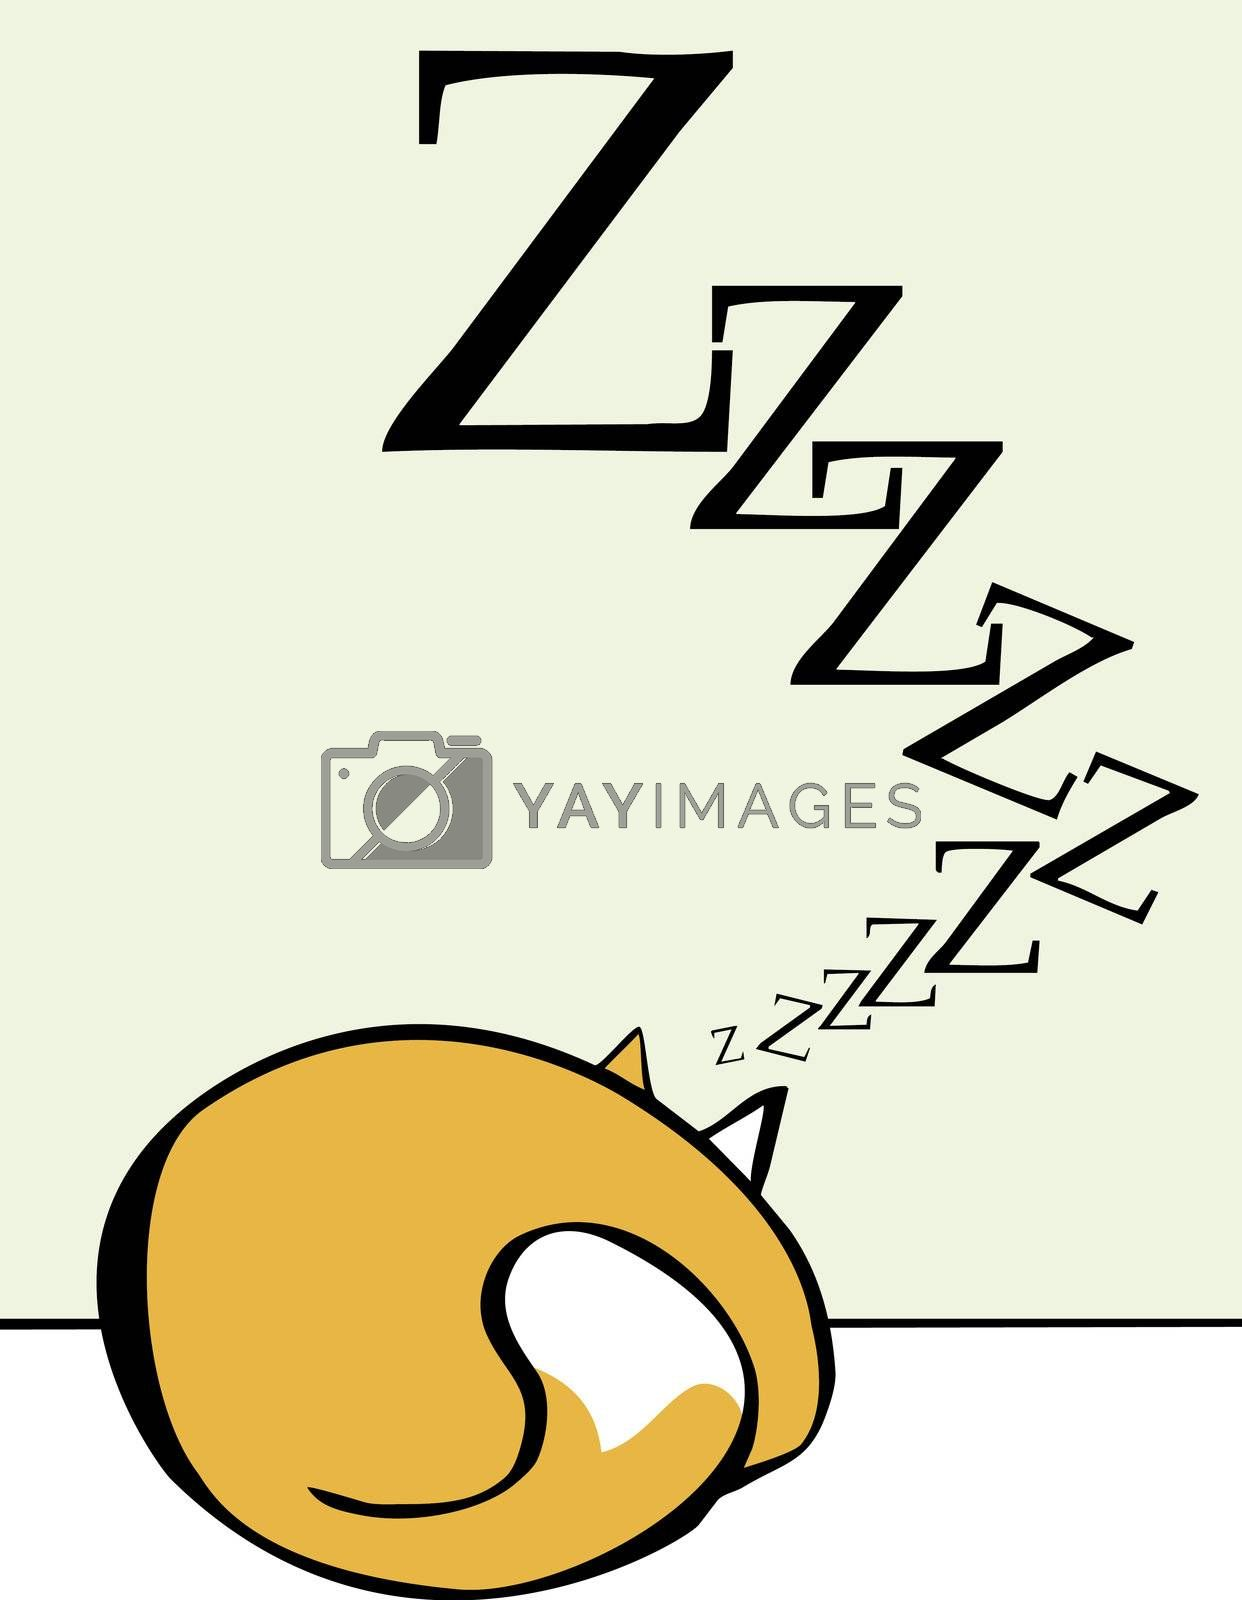 Cartoon of a sleeping rolled up into a ball.